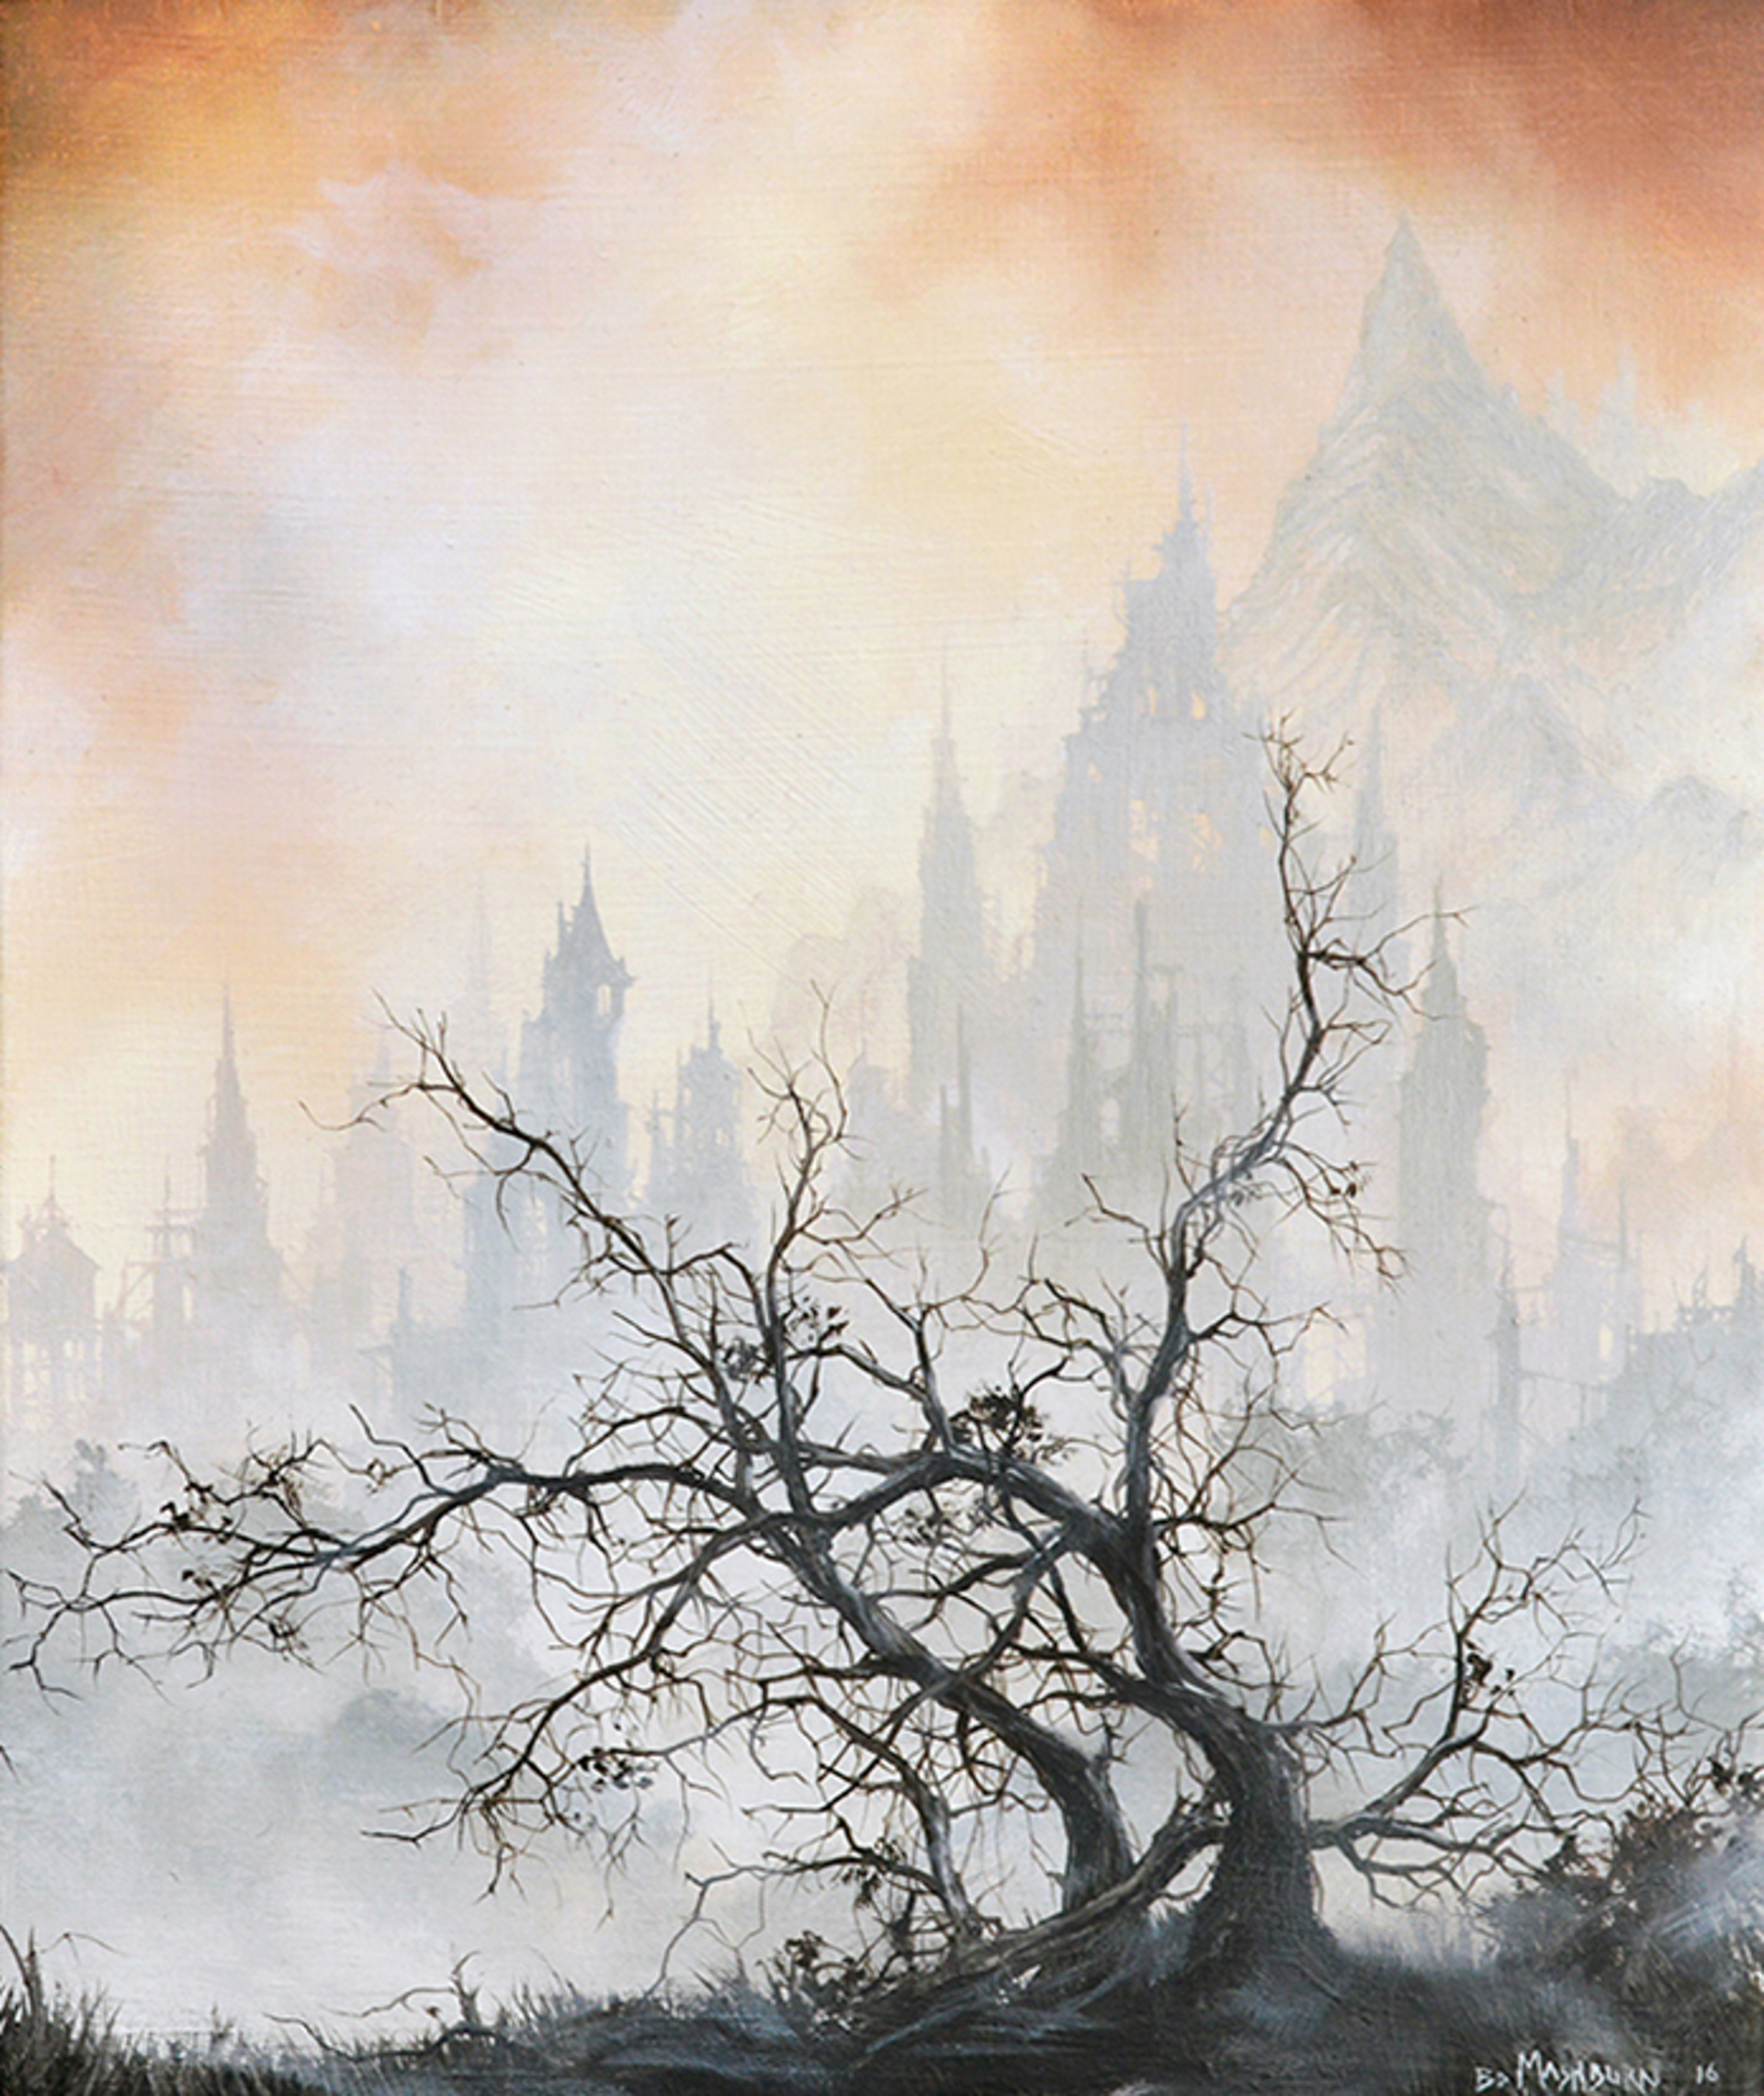 A Small Thicket at the Edge of Town by Brian Mashburn